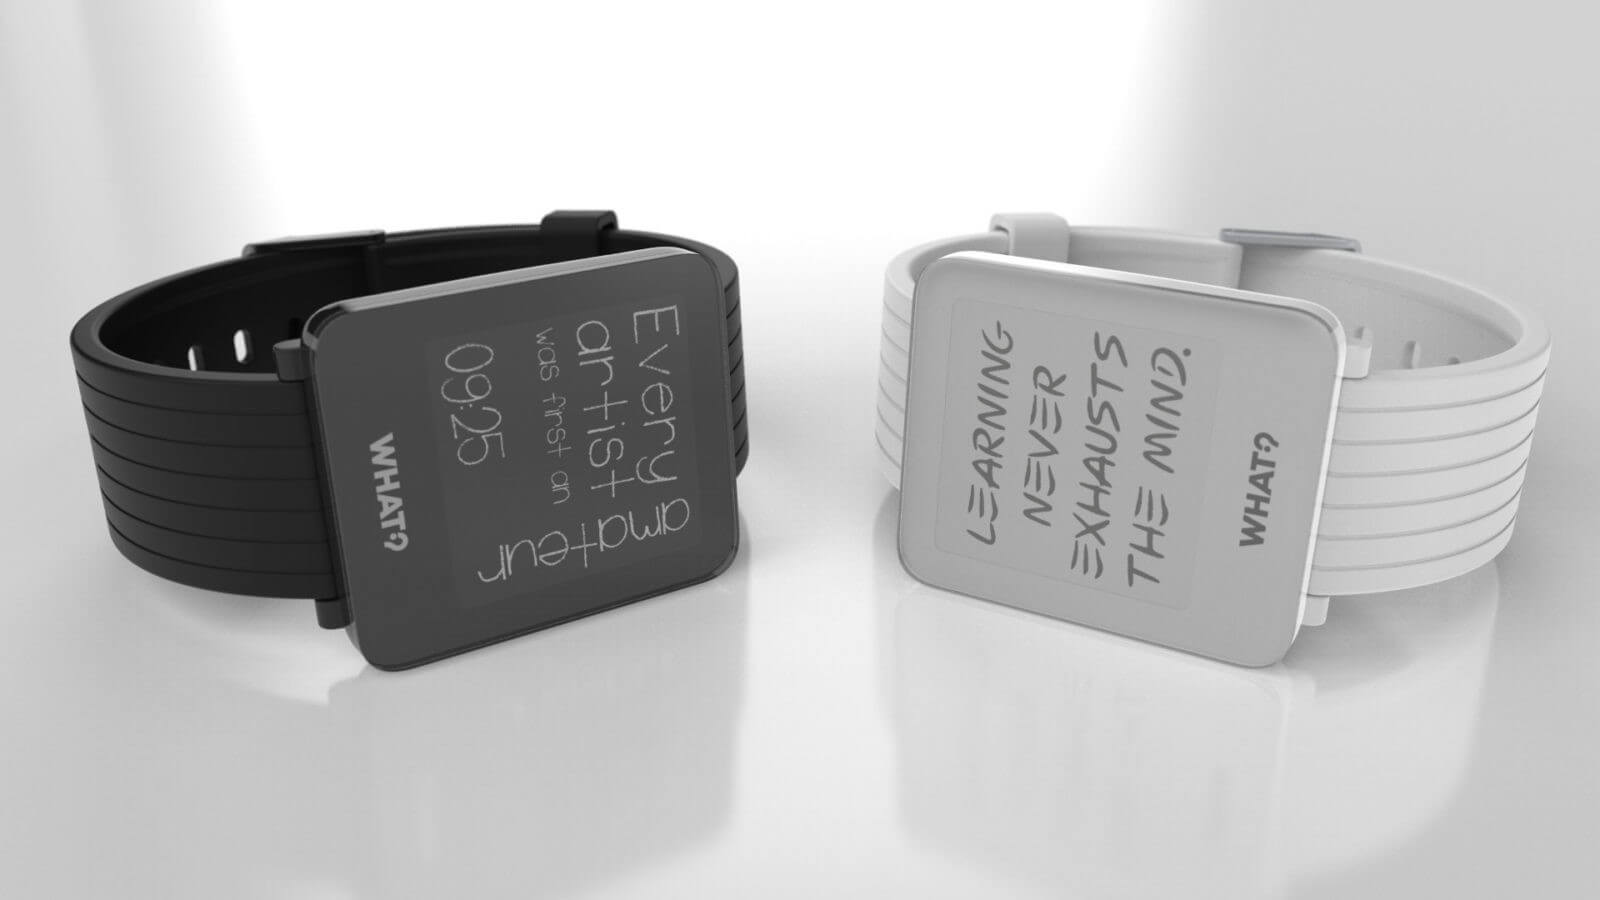 This smartwatch is perfect for lovers of inspirational quotes